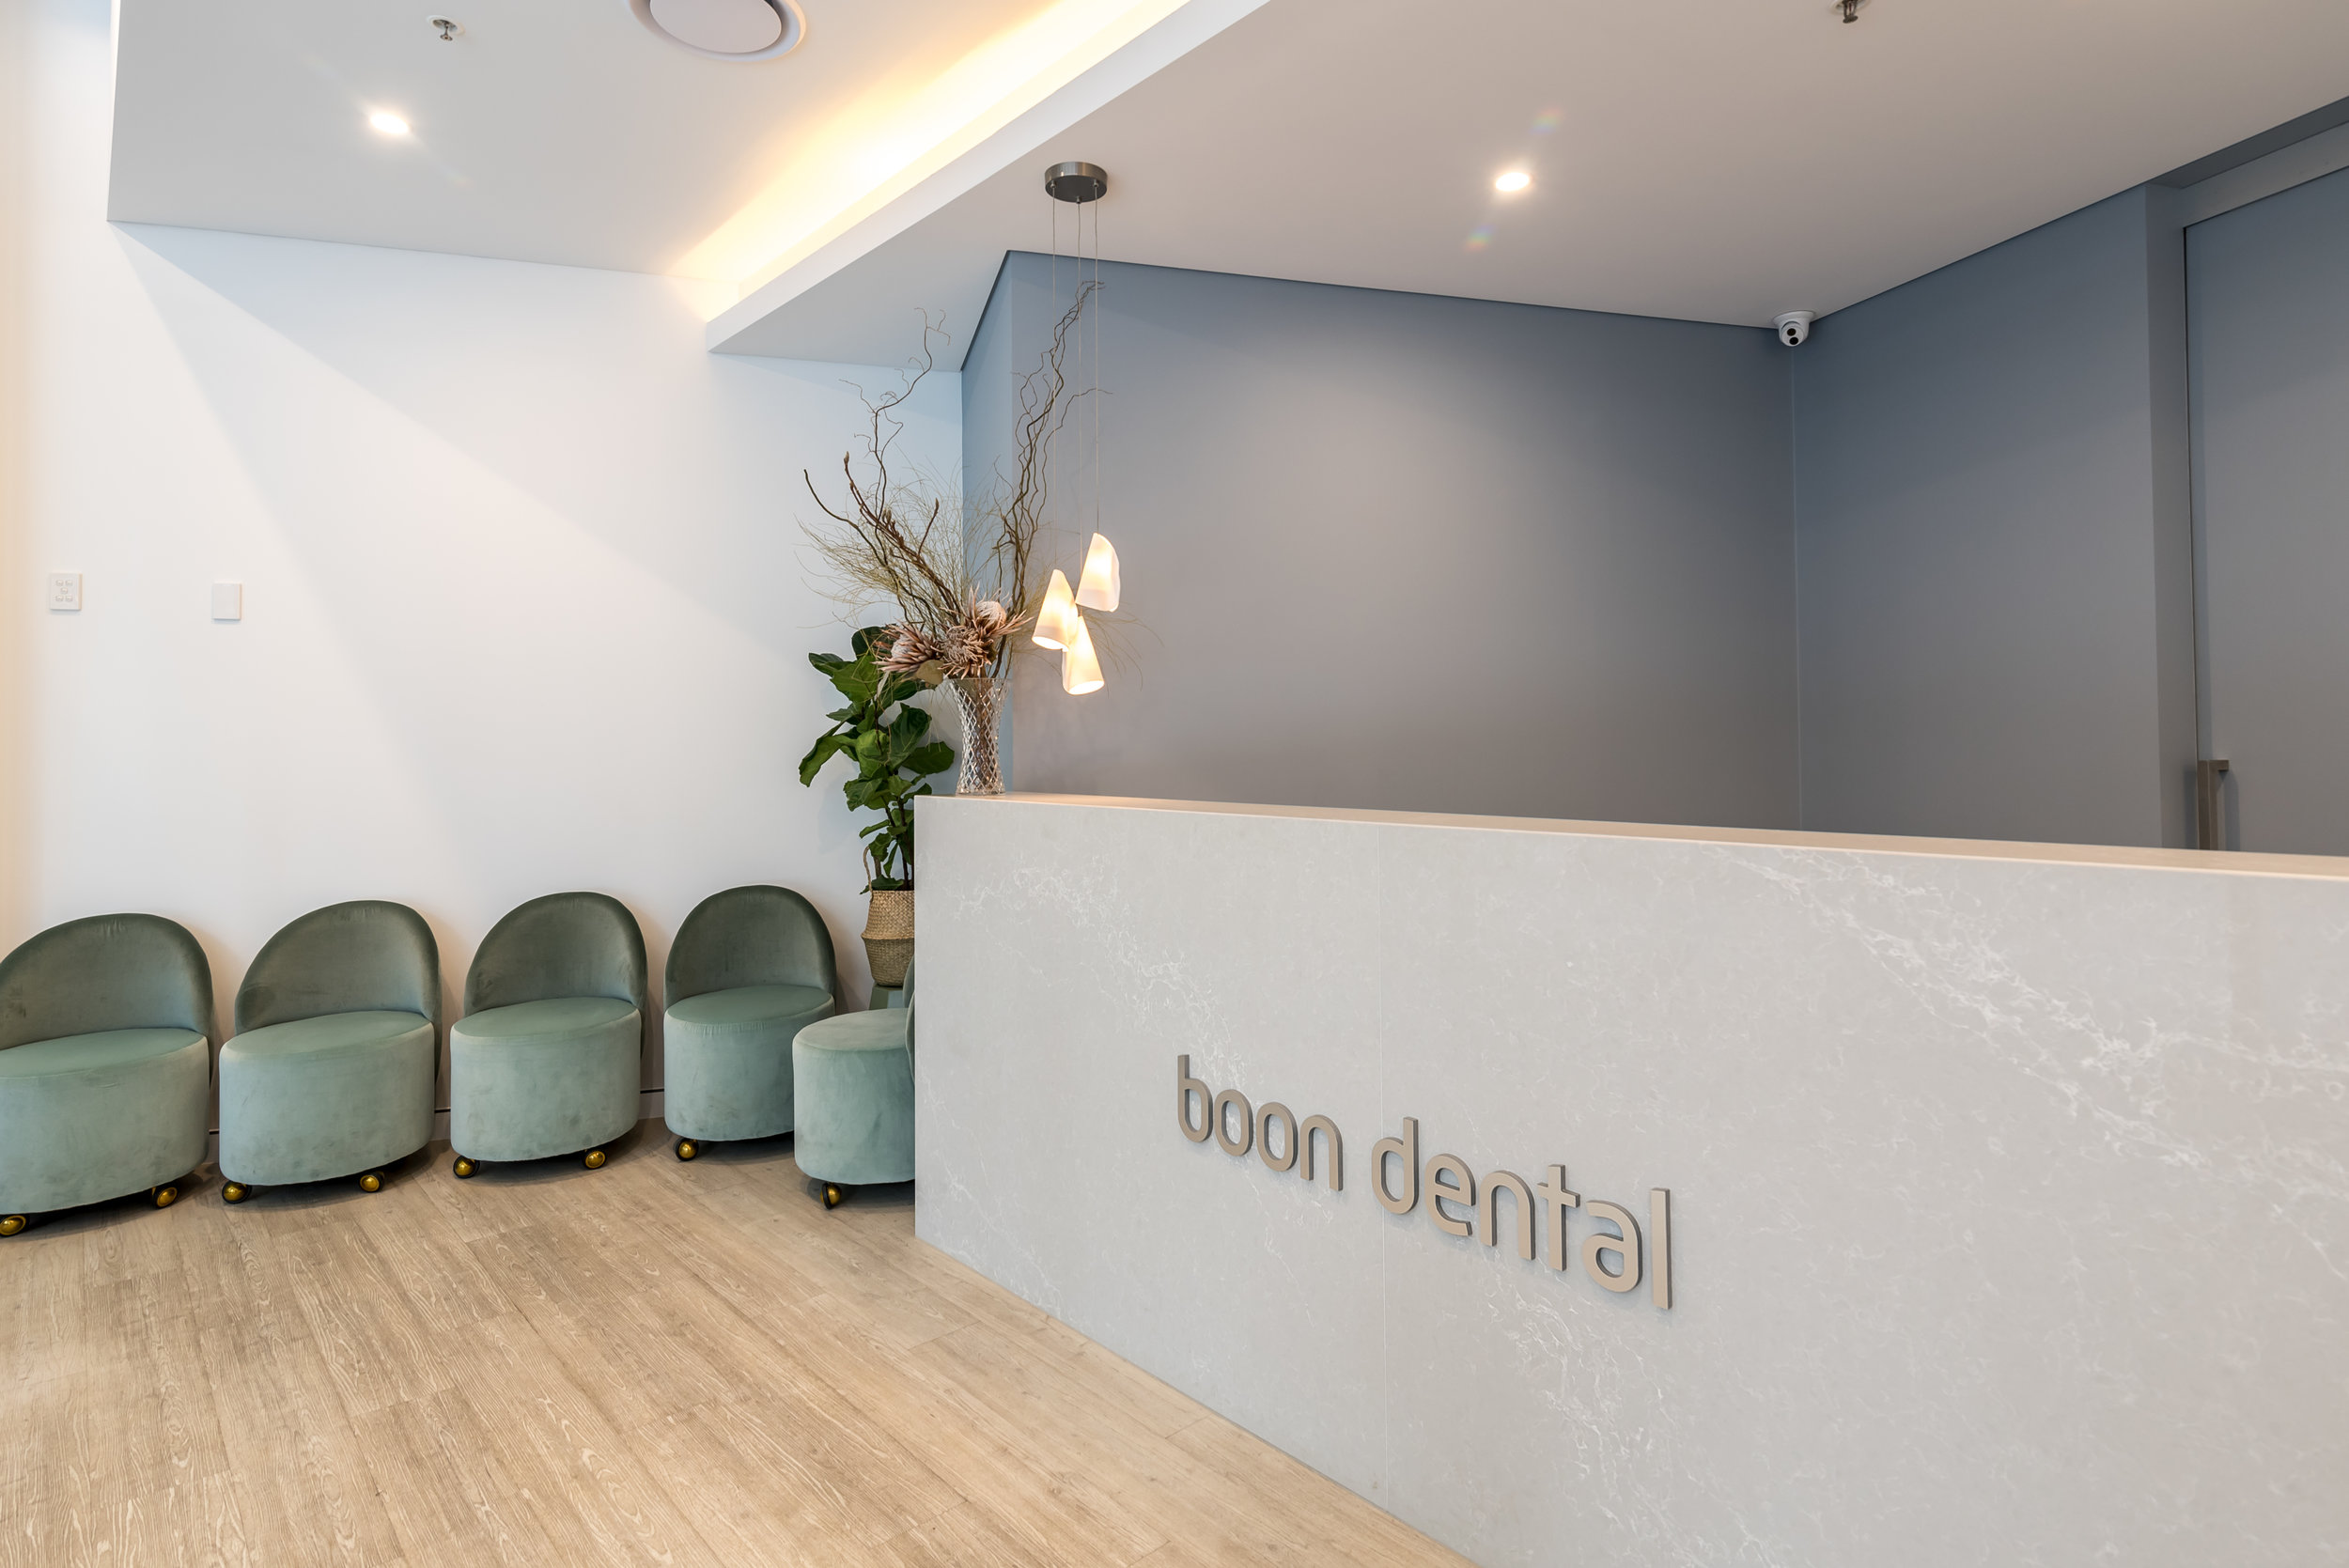 Commodore Dental and Medical Fitout - Sydney-53.jpg